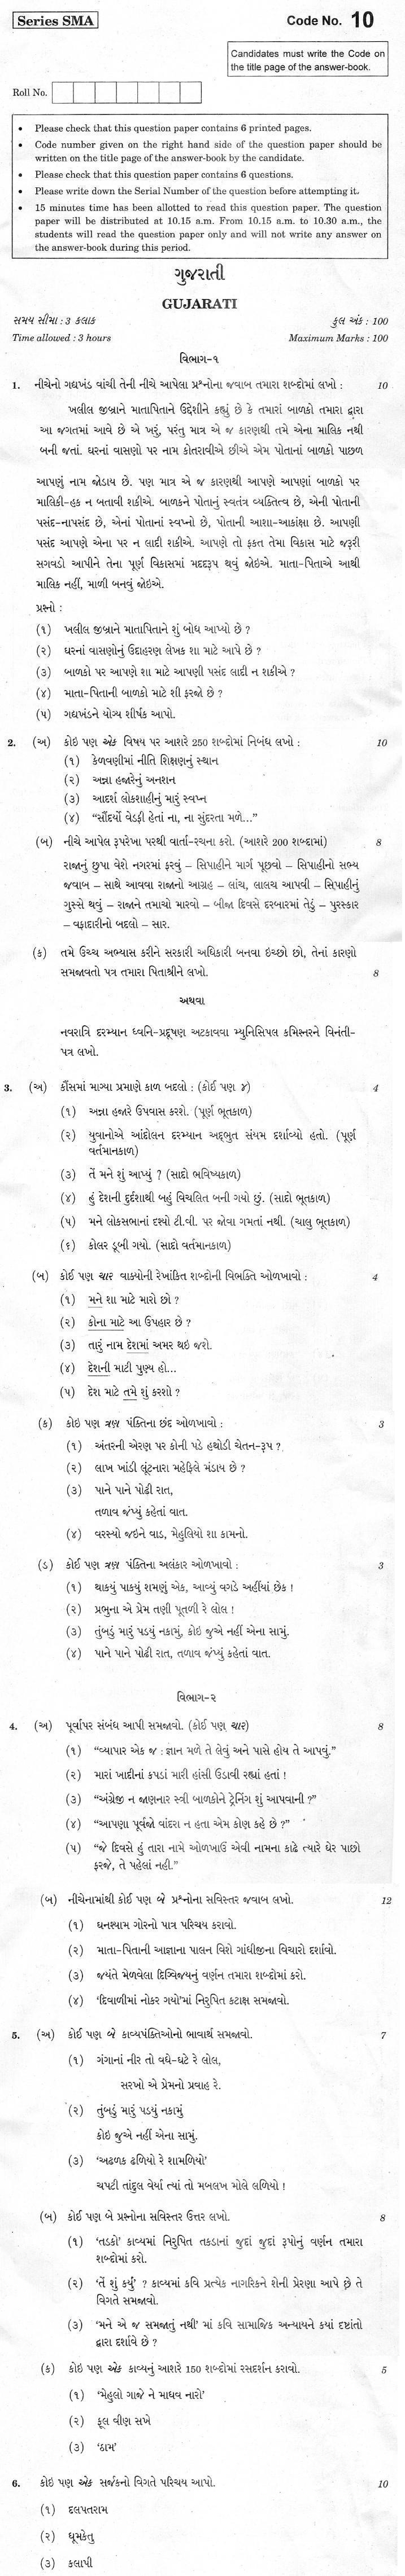 CBSE Class XII Previous Year Question Paper 2012 Gujarati